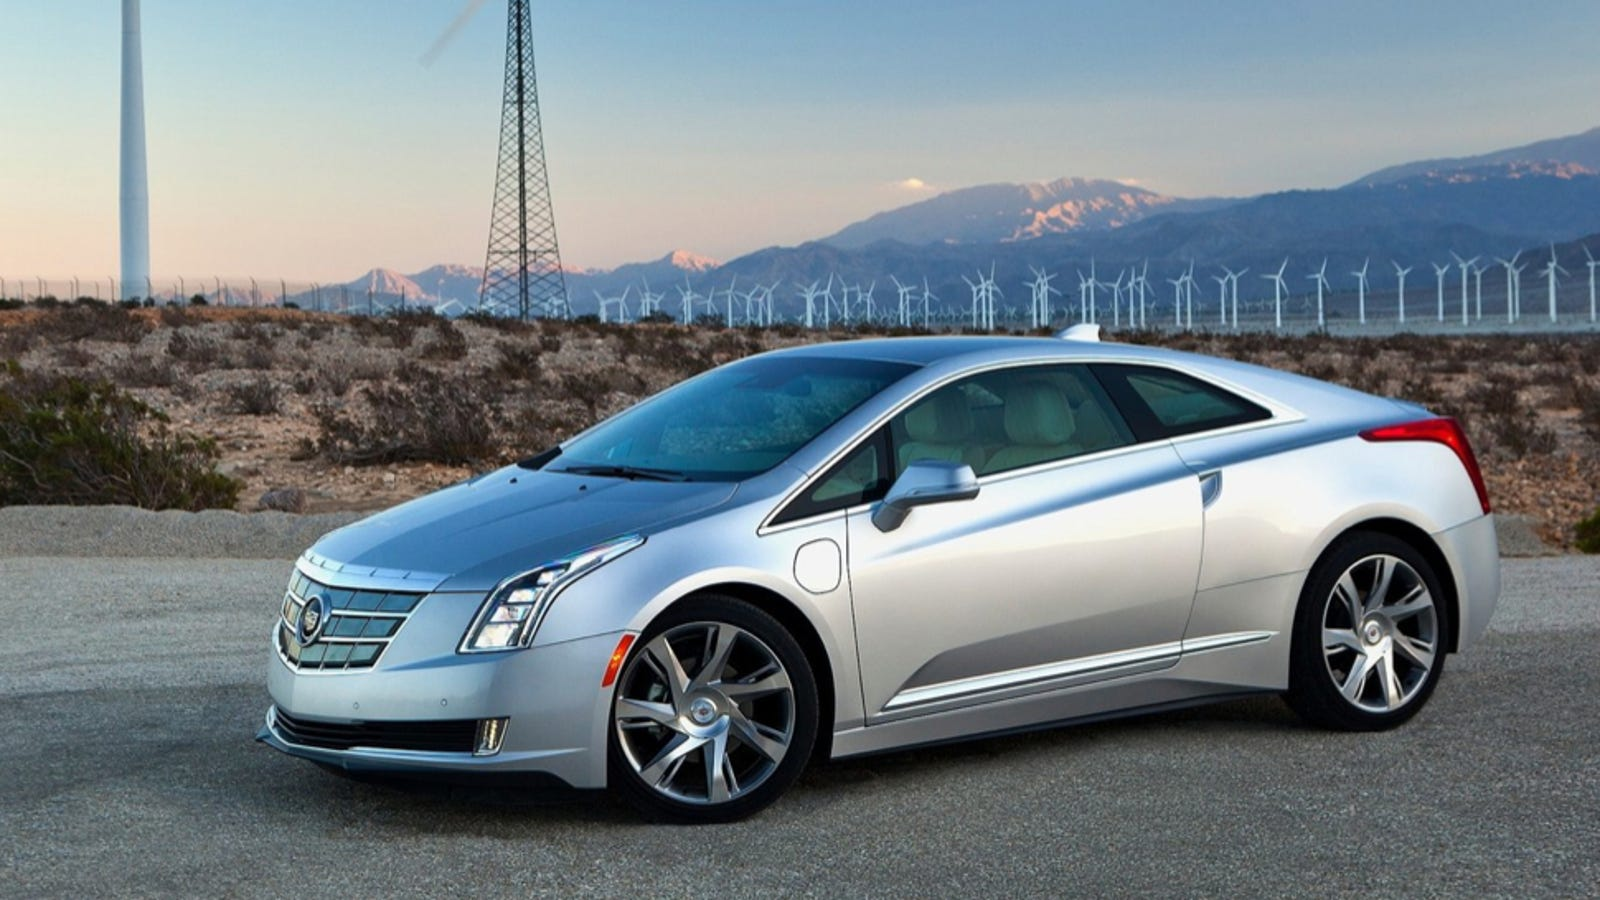 cadillac dont sale the here t of don elr half want for s heres why dealers